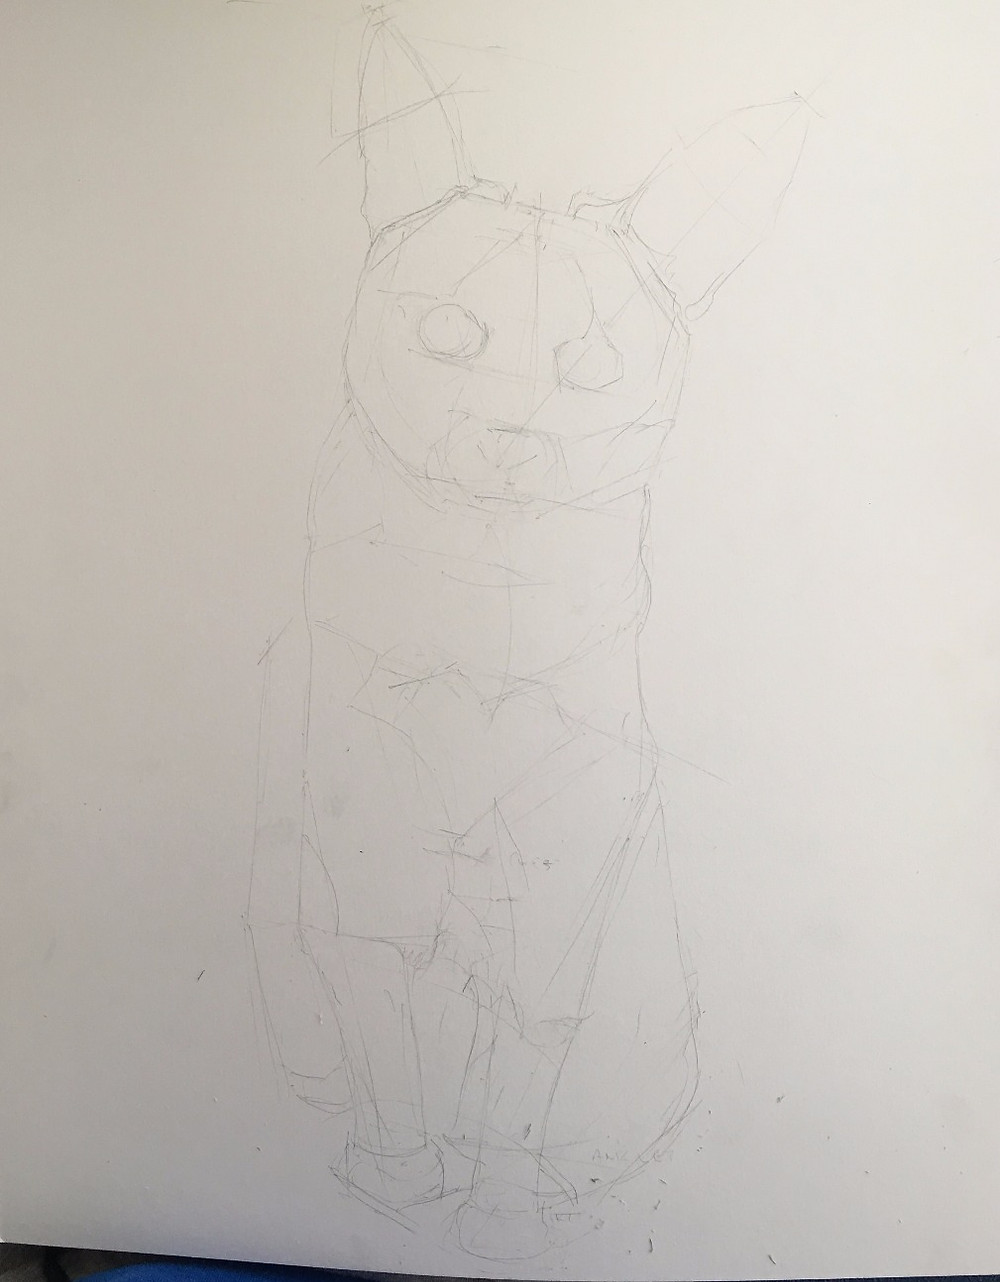 Sketch of a cat sitting